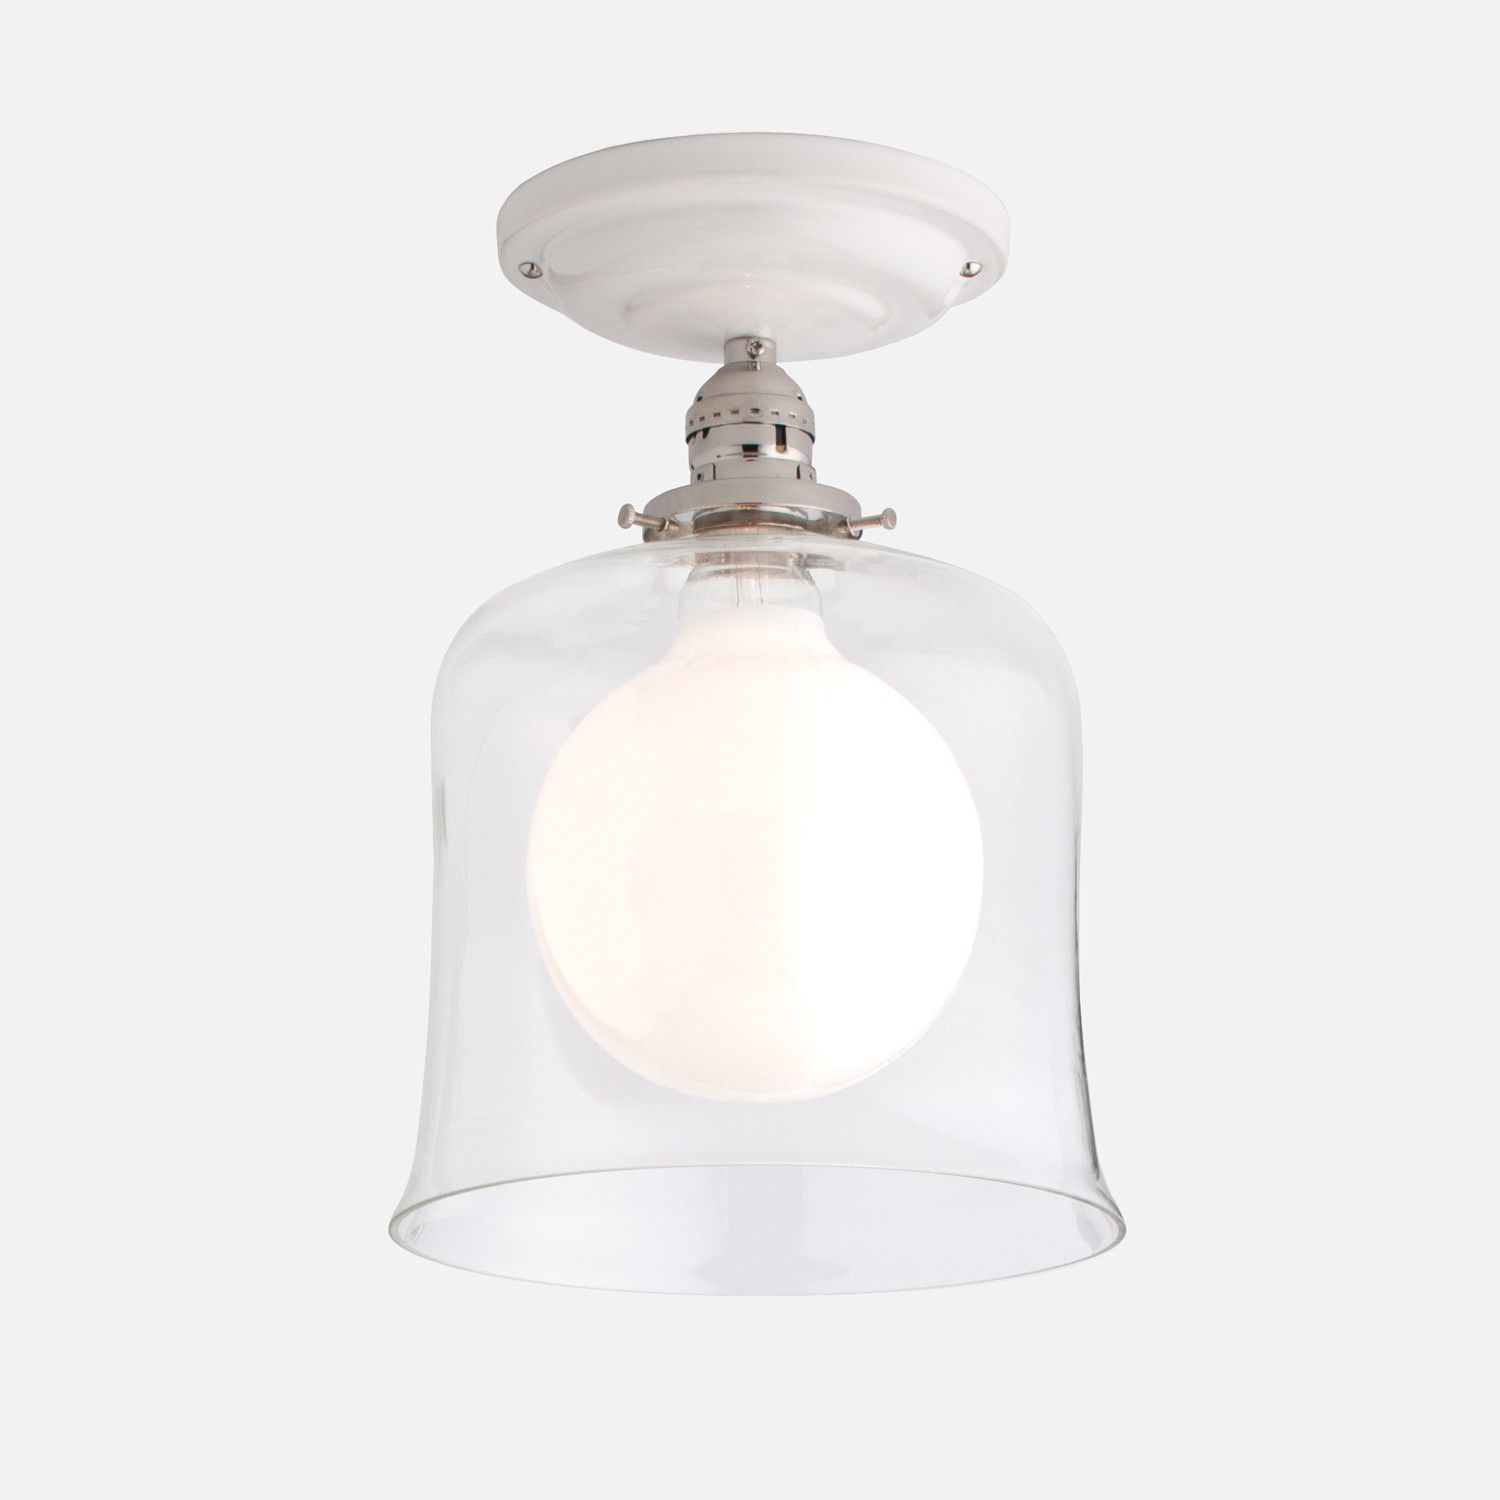 Hendrix Surface Mount Light Fixture | Schoolhouse Electric & Supply ...